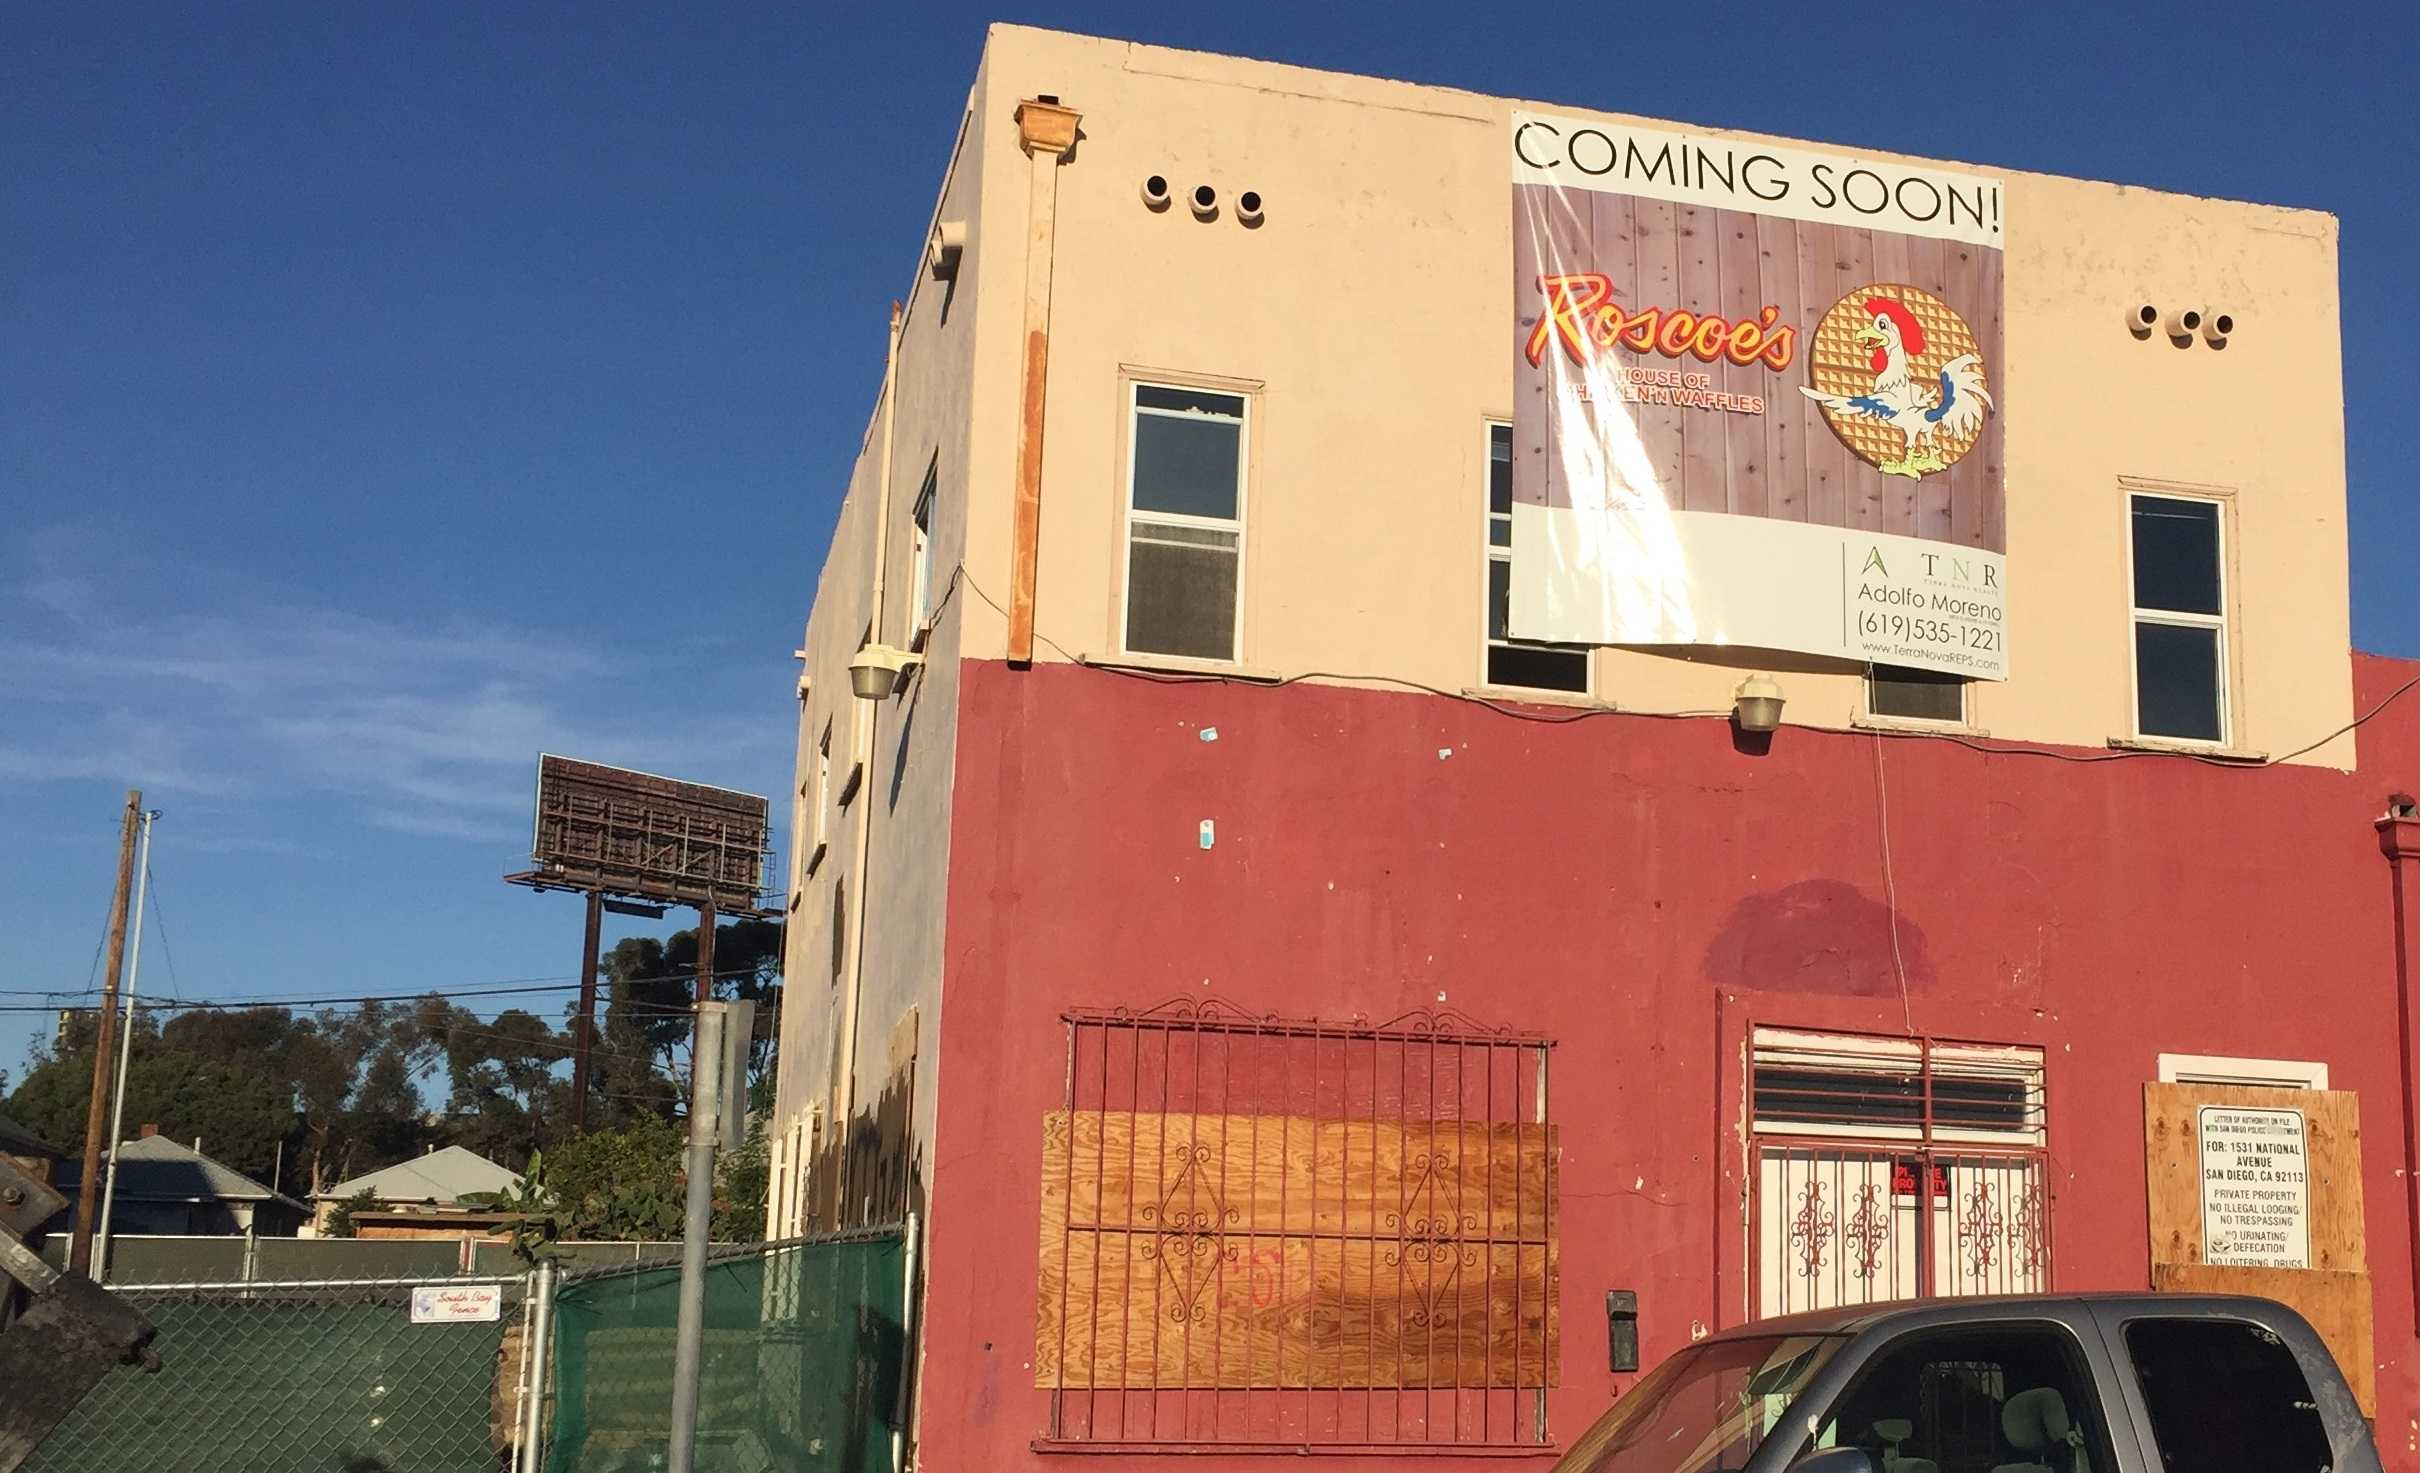 The building for the new Roscoe's is still not yet complete.